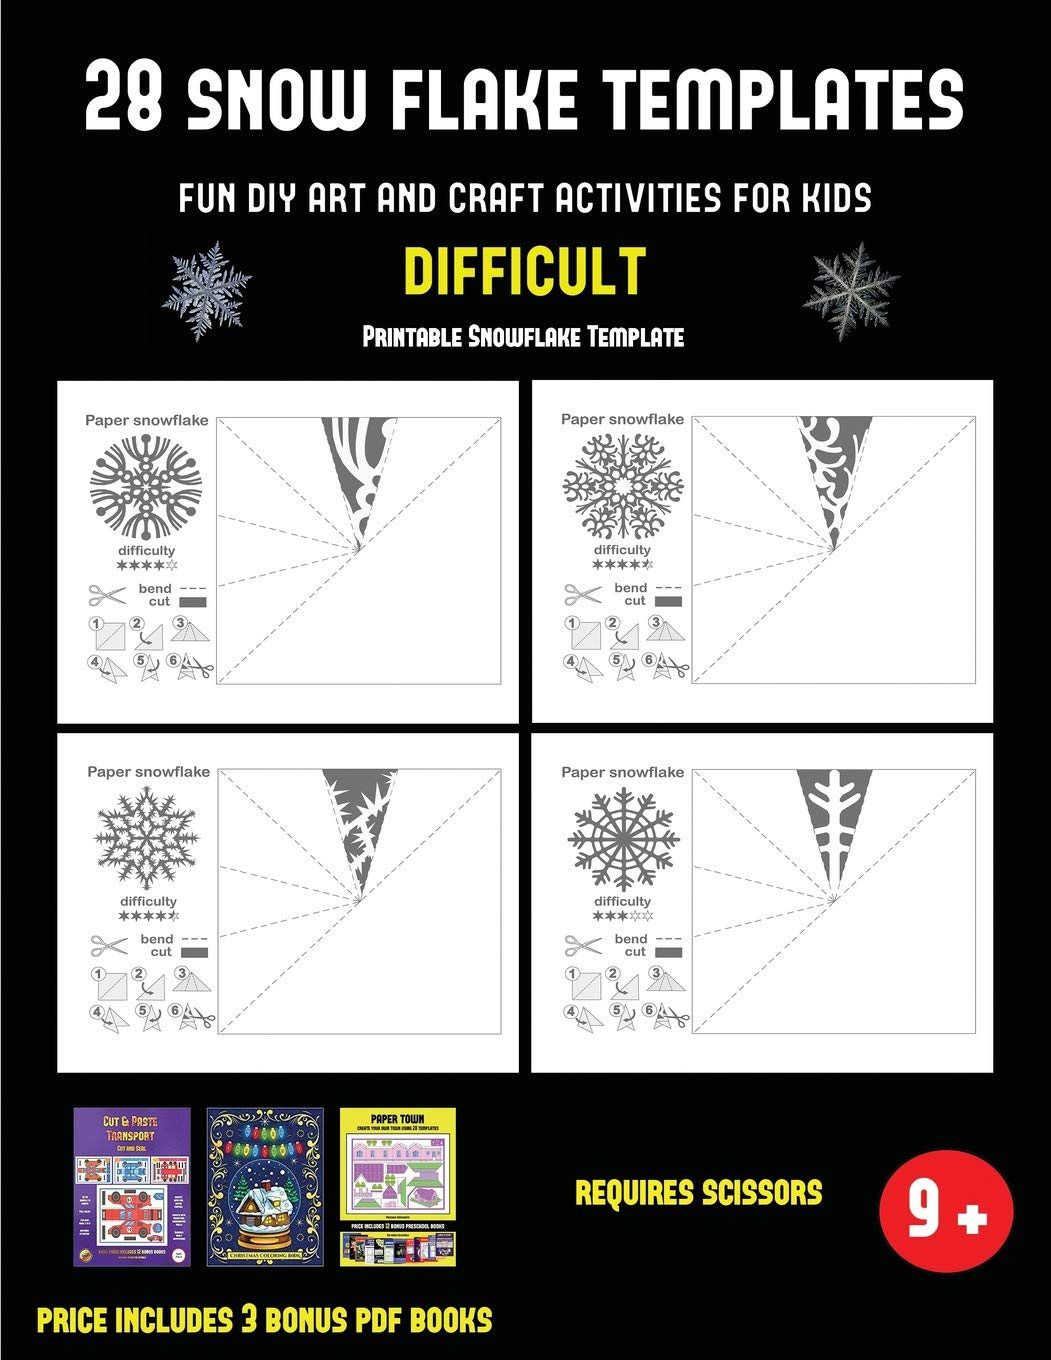 It's just an image of Printable Snowflake Stencils for window clings